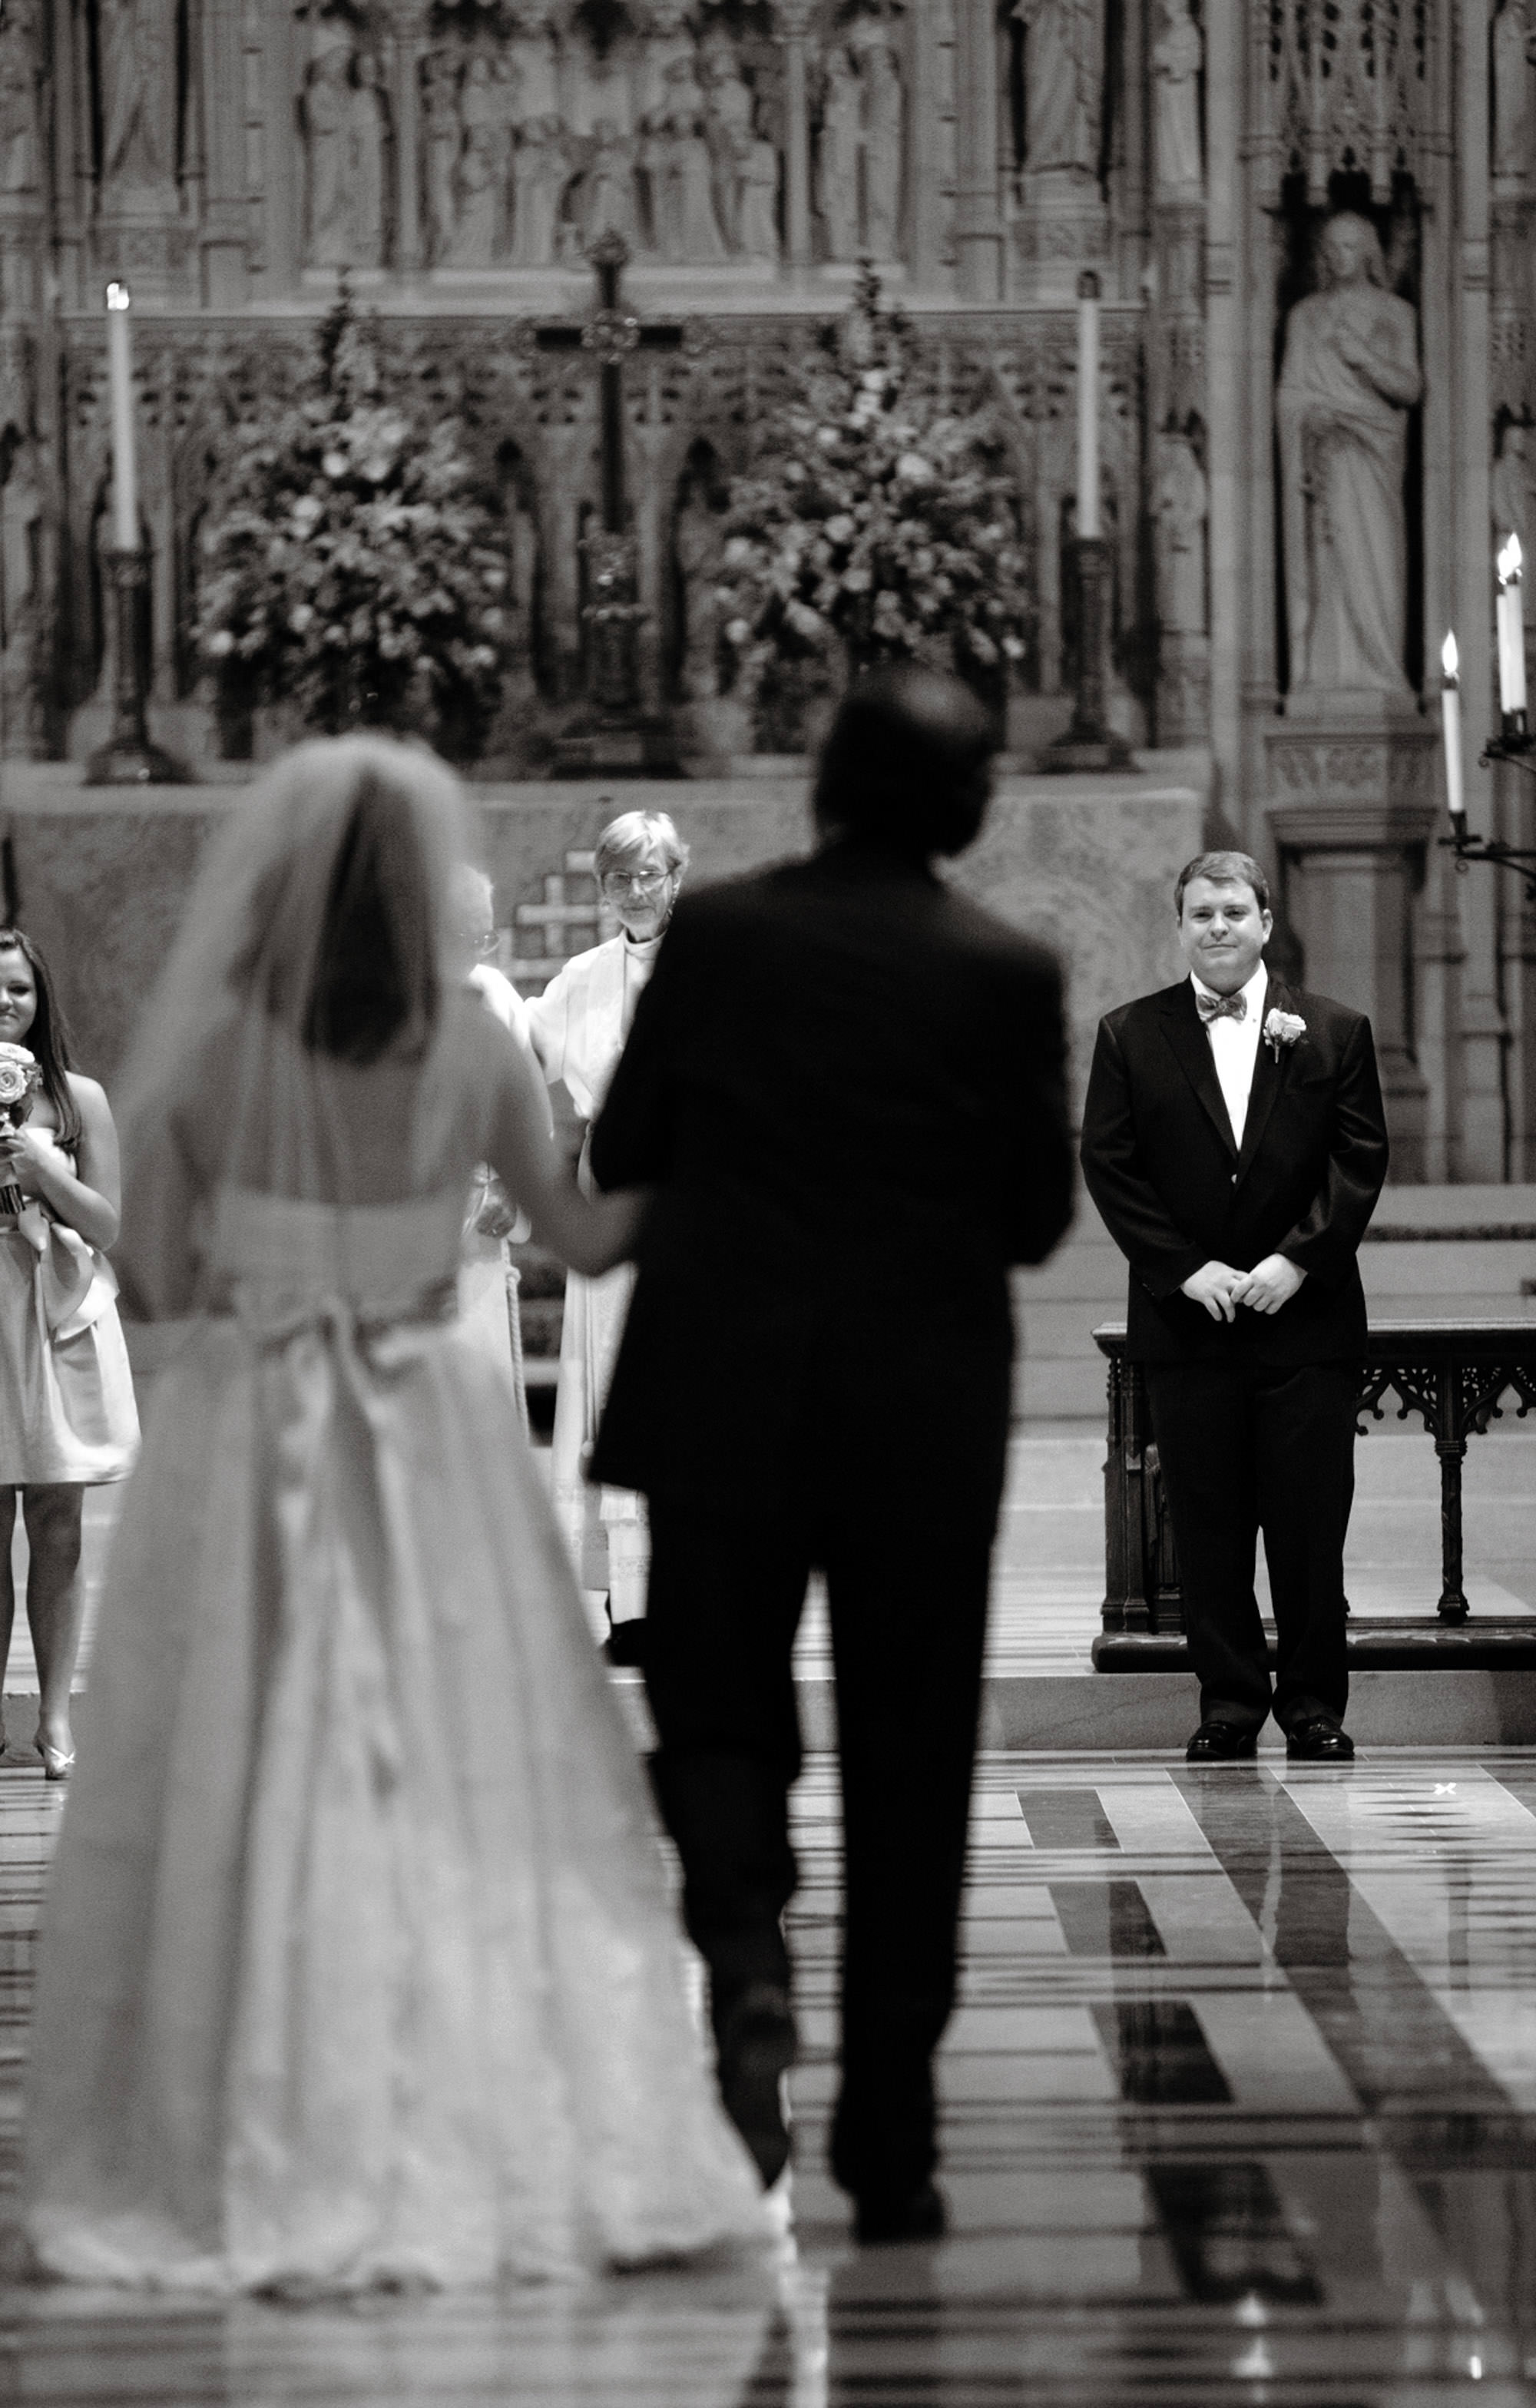 The groom sees his bride as she walks down the aisle during the Washington National Cathedral wedding.